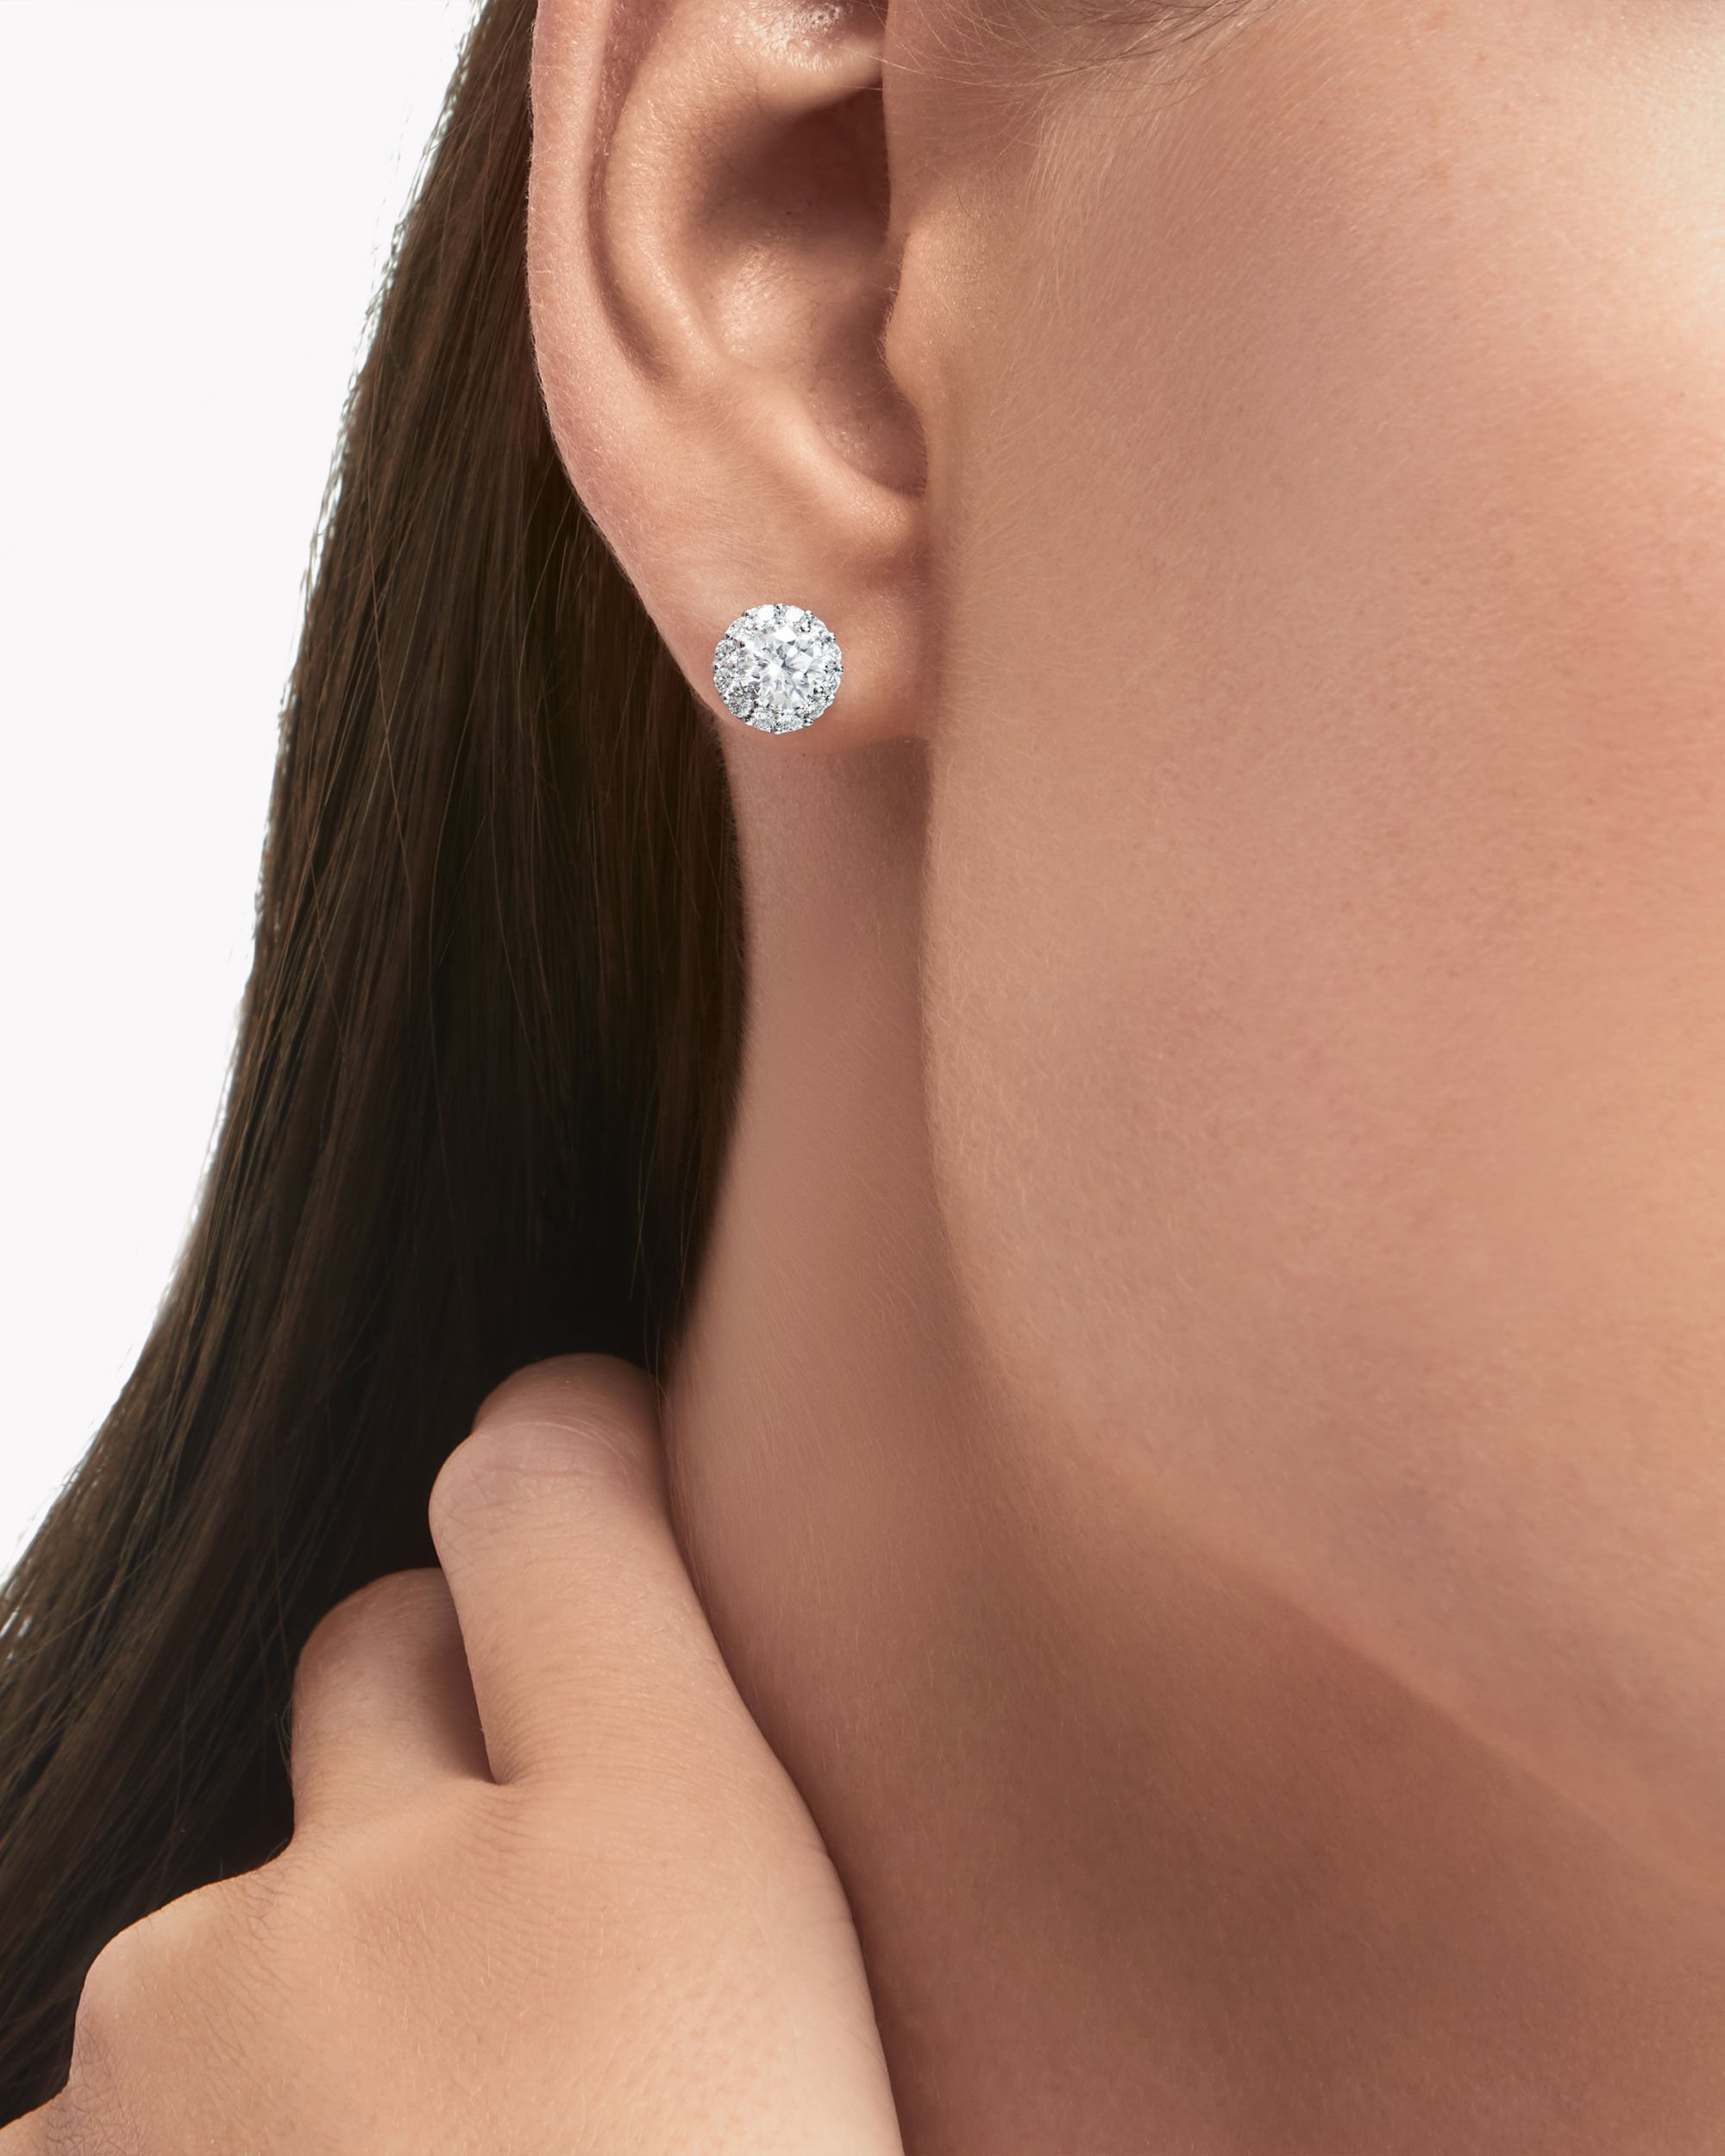 Model wear the Graff Jewellery collection diamond earrings